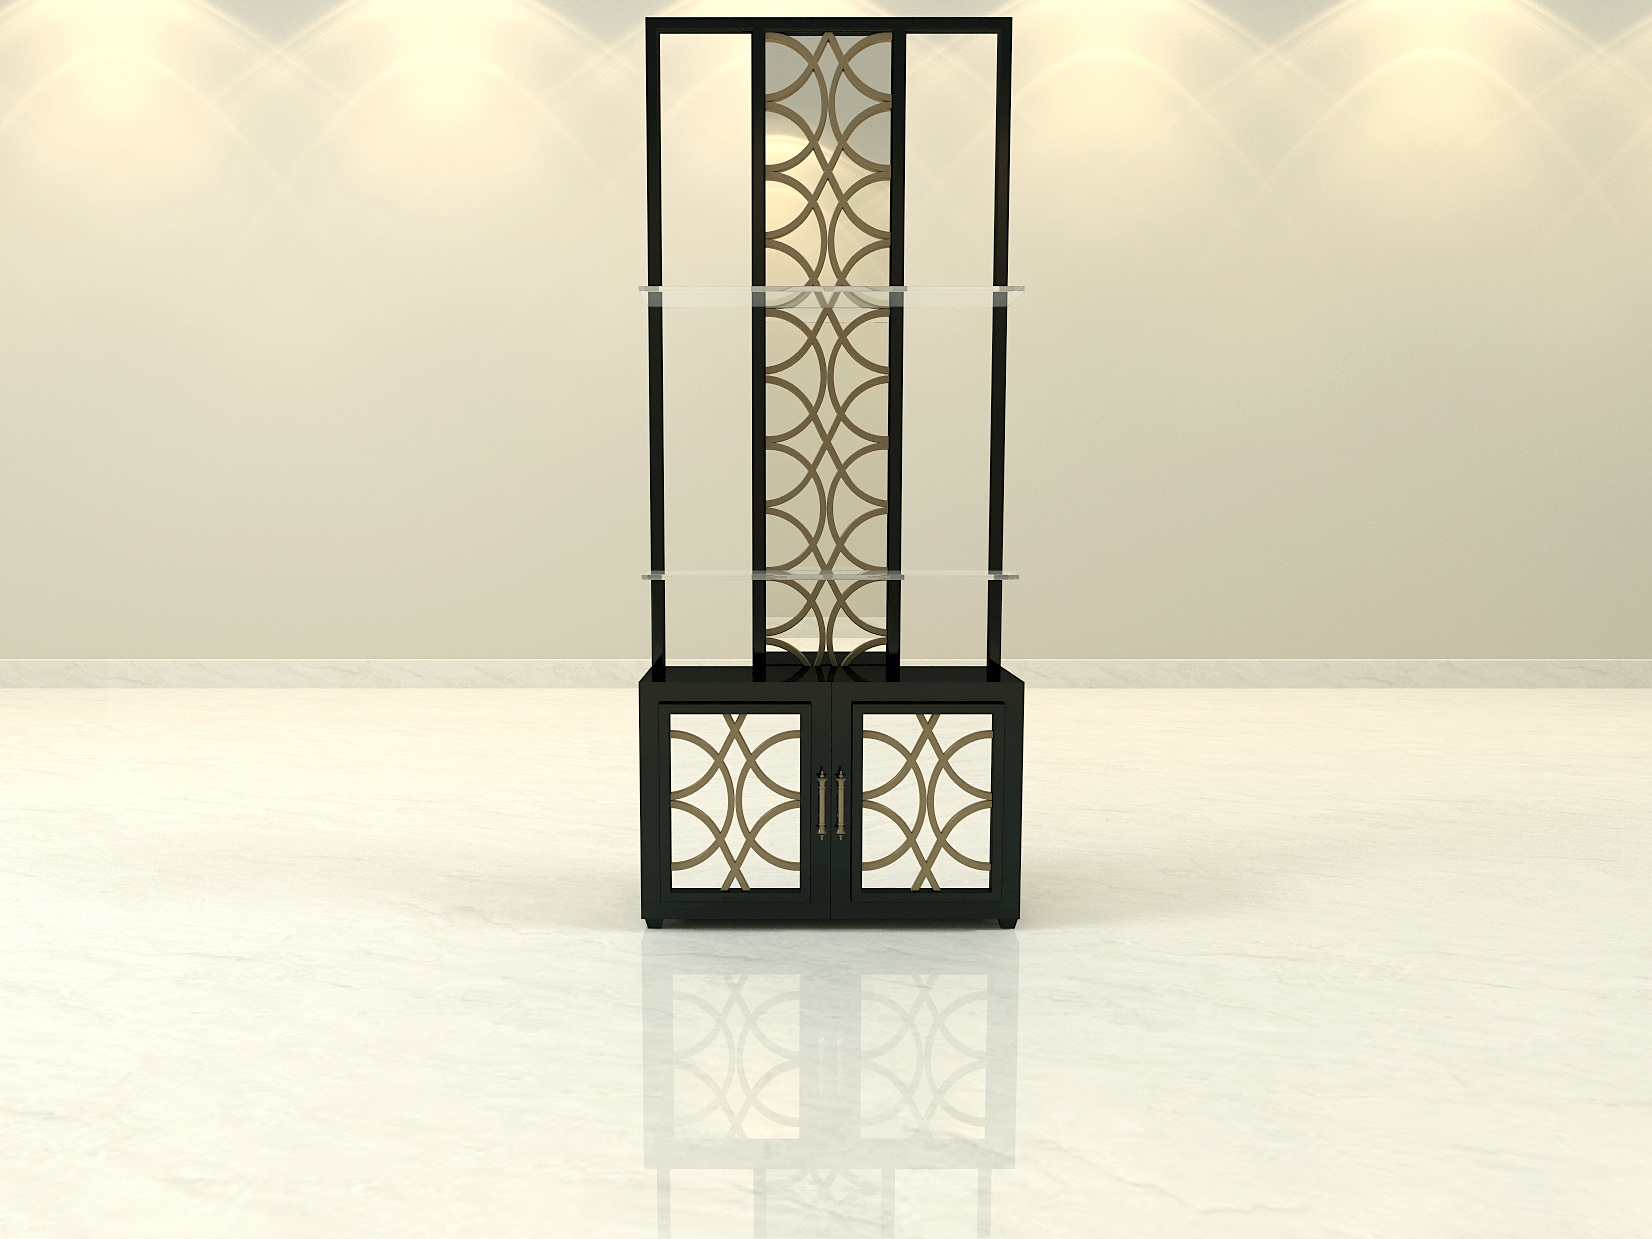 "The royal suite etagere - Overall Dimensions: 100"" tall x 40"" wide x 14"" tall. Pricing and more Information contact us."